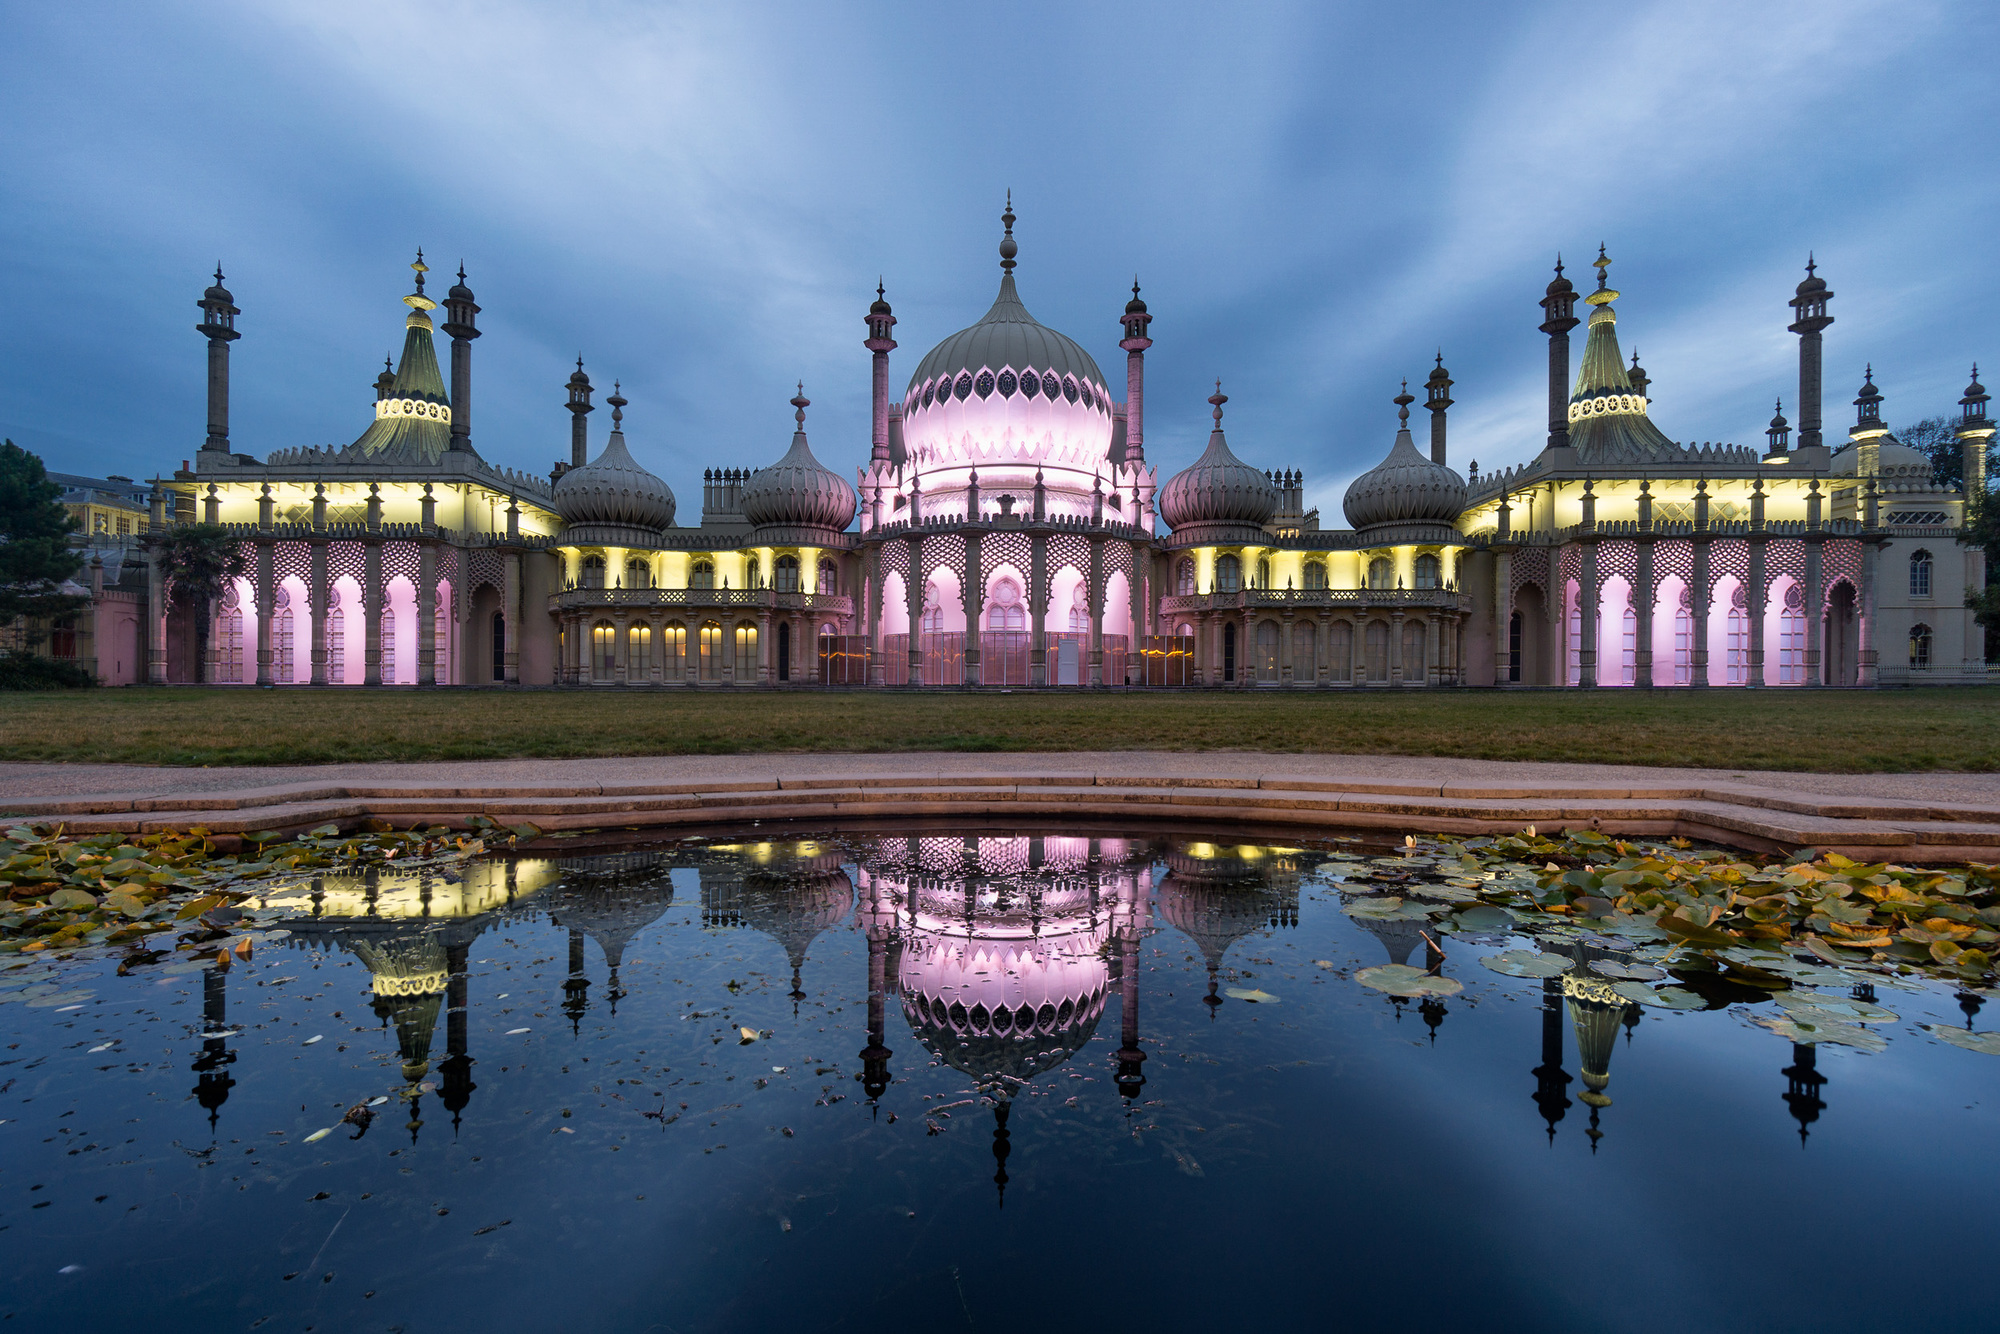 Royal Pavilion, Brighton night